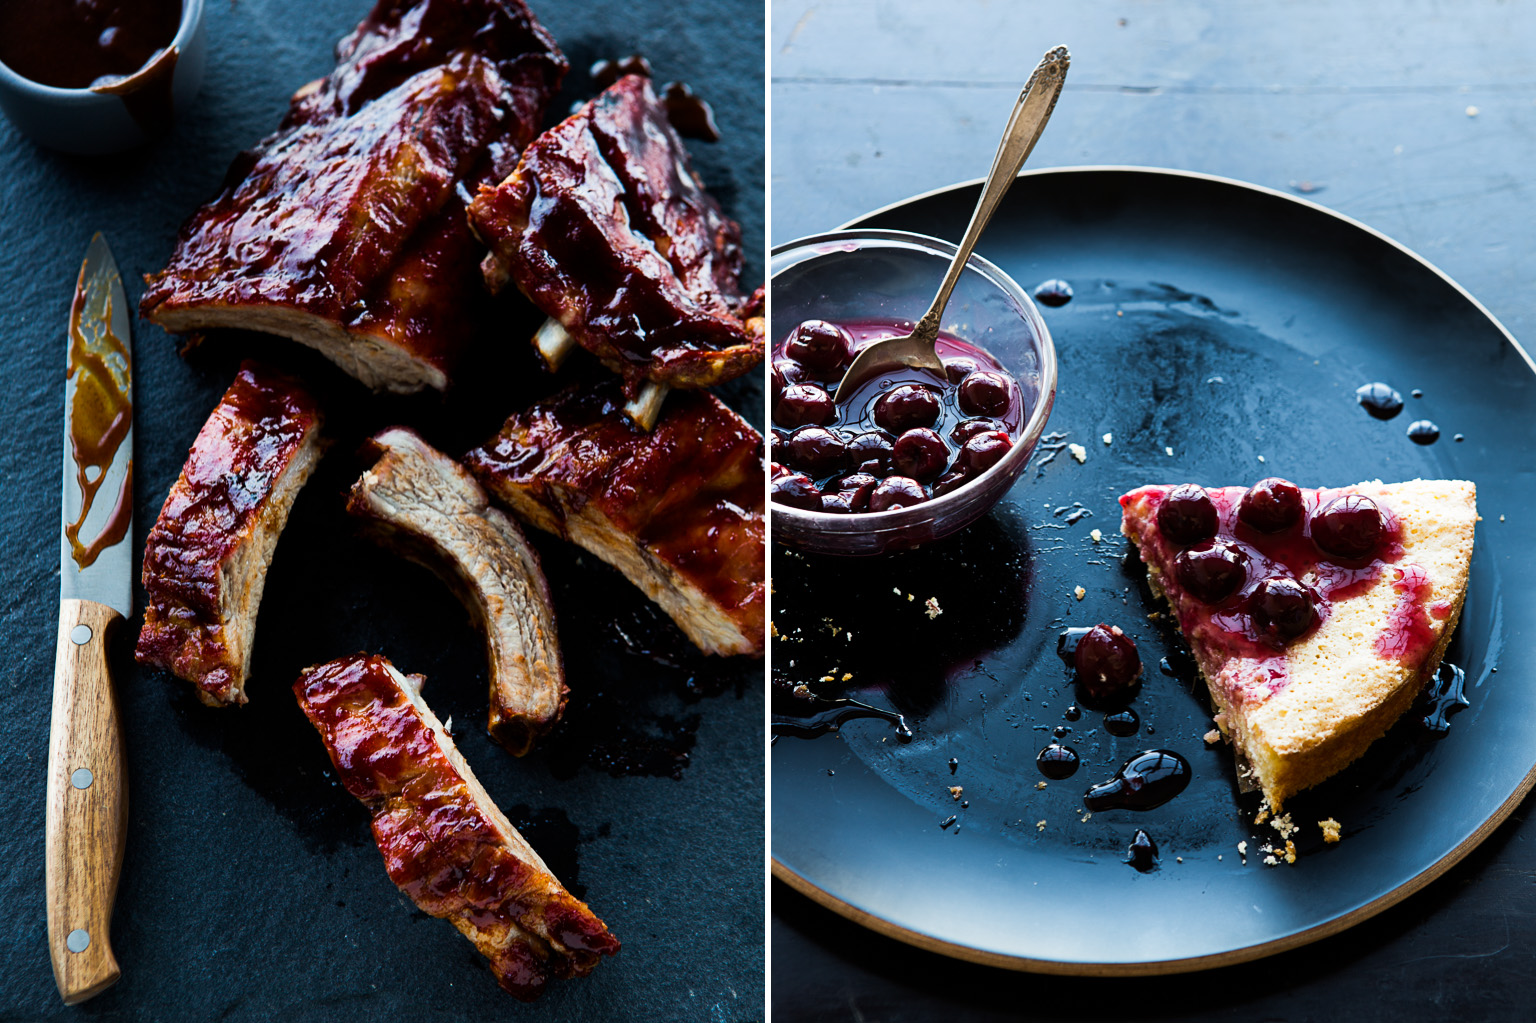 Ribs and cherry tart.